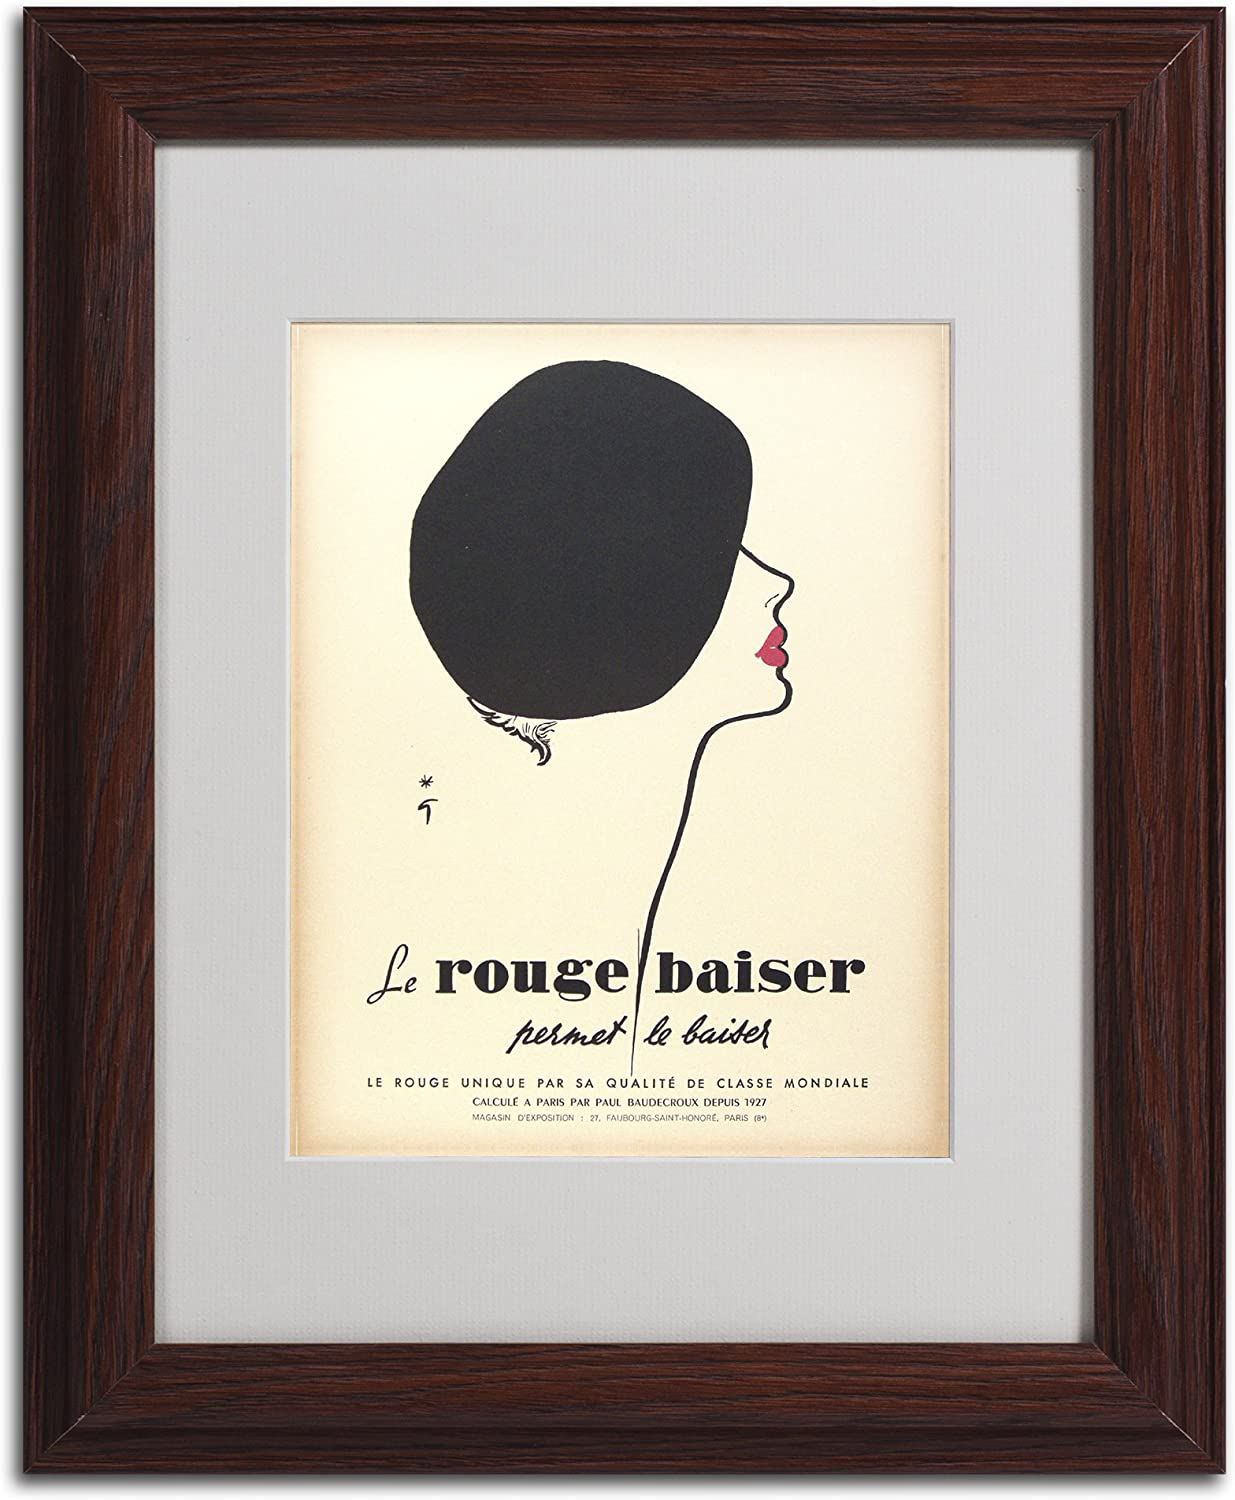 Poster Reproduction. Wall art vintage French Advertising Saharet